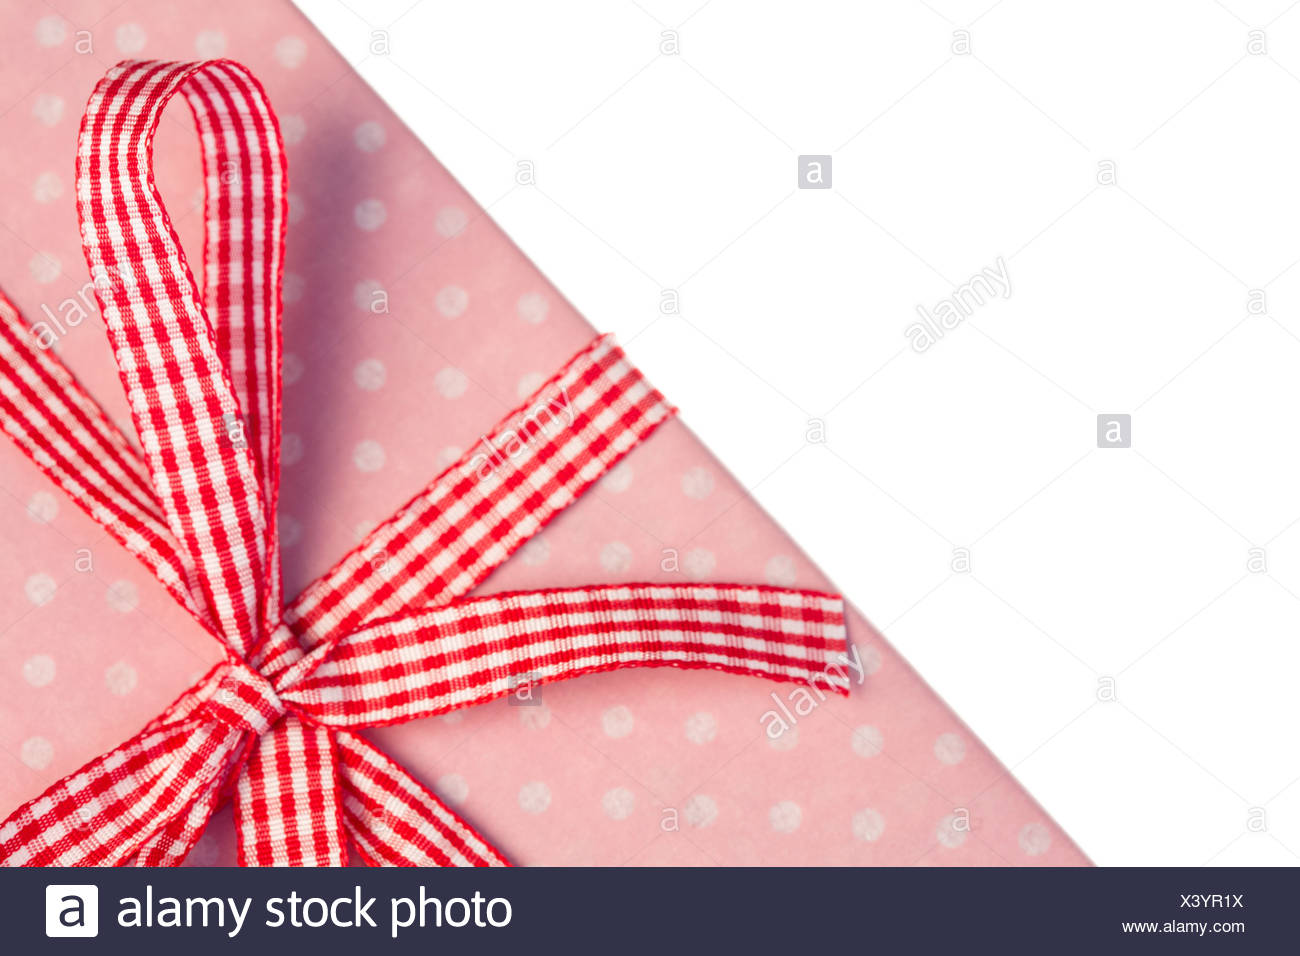 Pink gift wrapped present with gingham ribbon - Stock Image